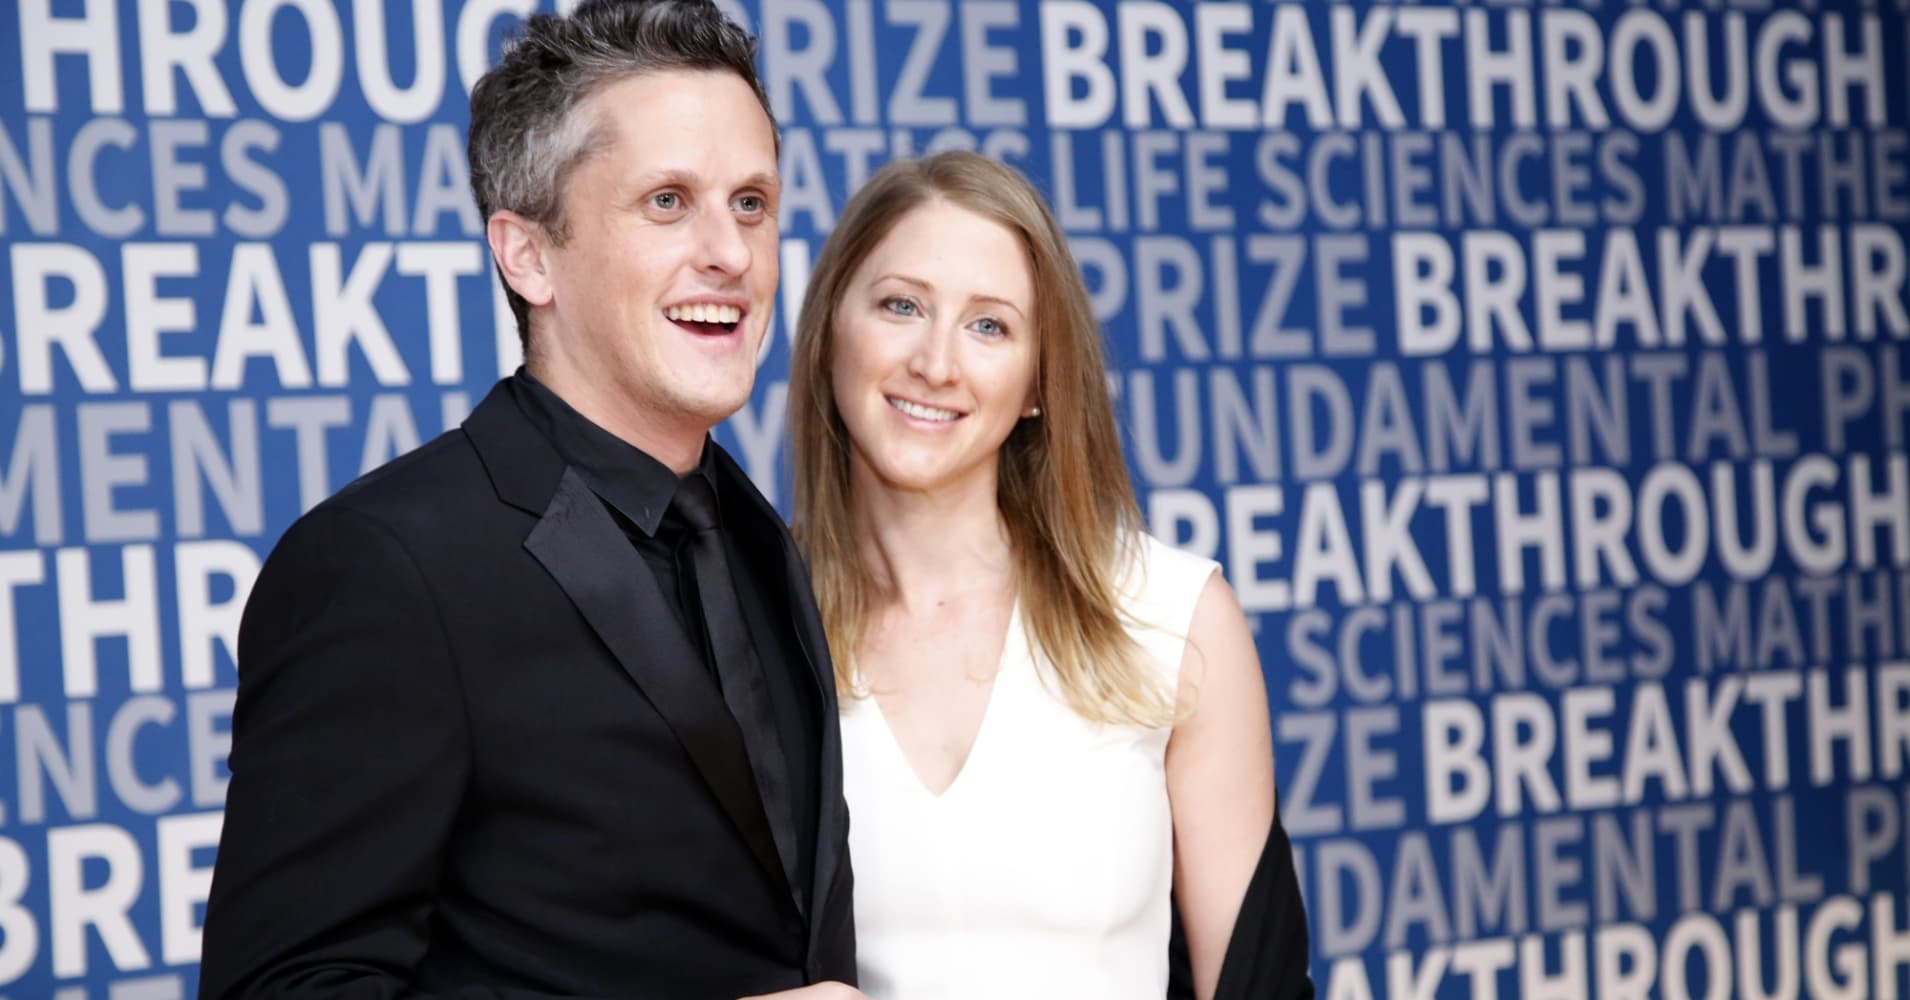 CEO of Box Aaron Levie and CEO of Paradigm Joelle Emerson attend the 2017 Breakthrough Prize.